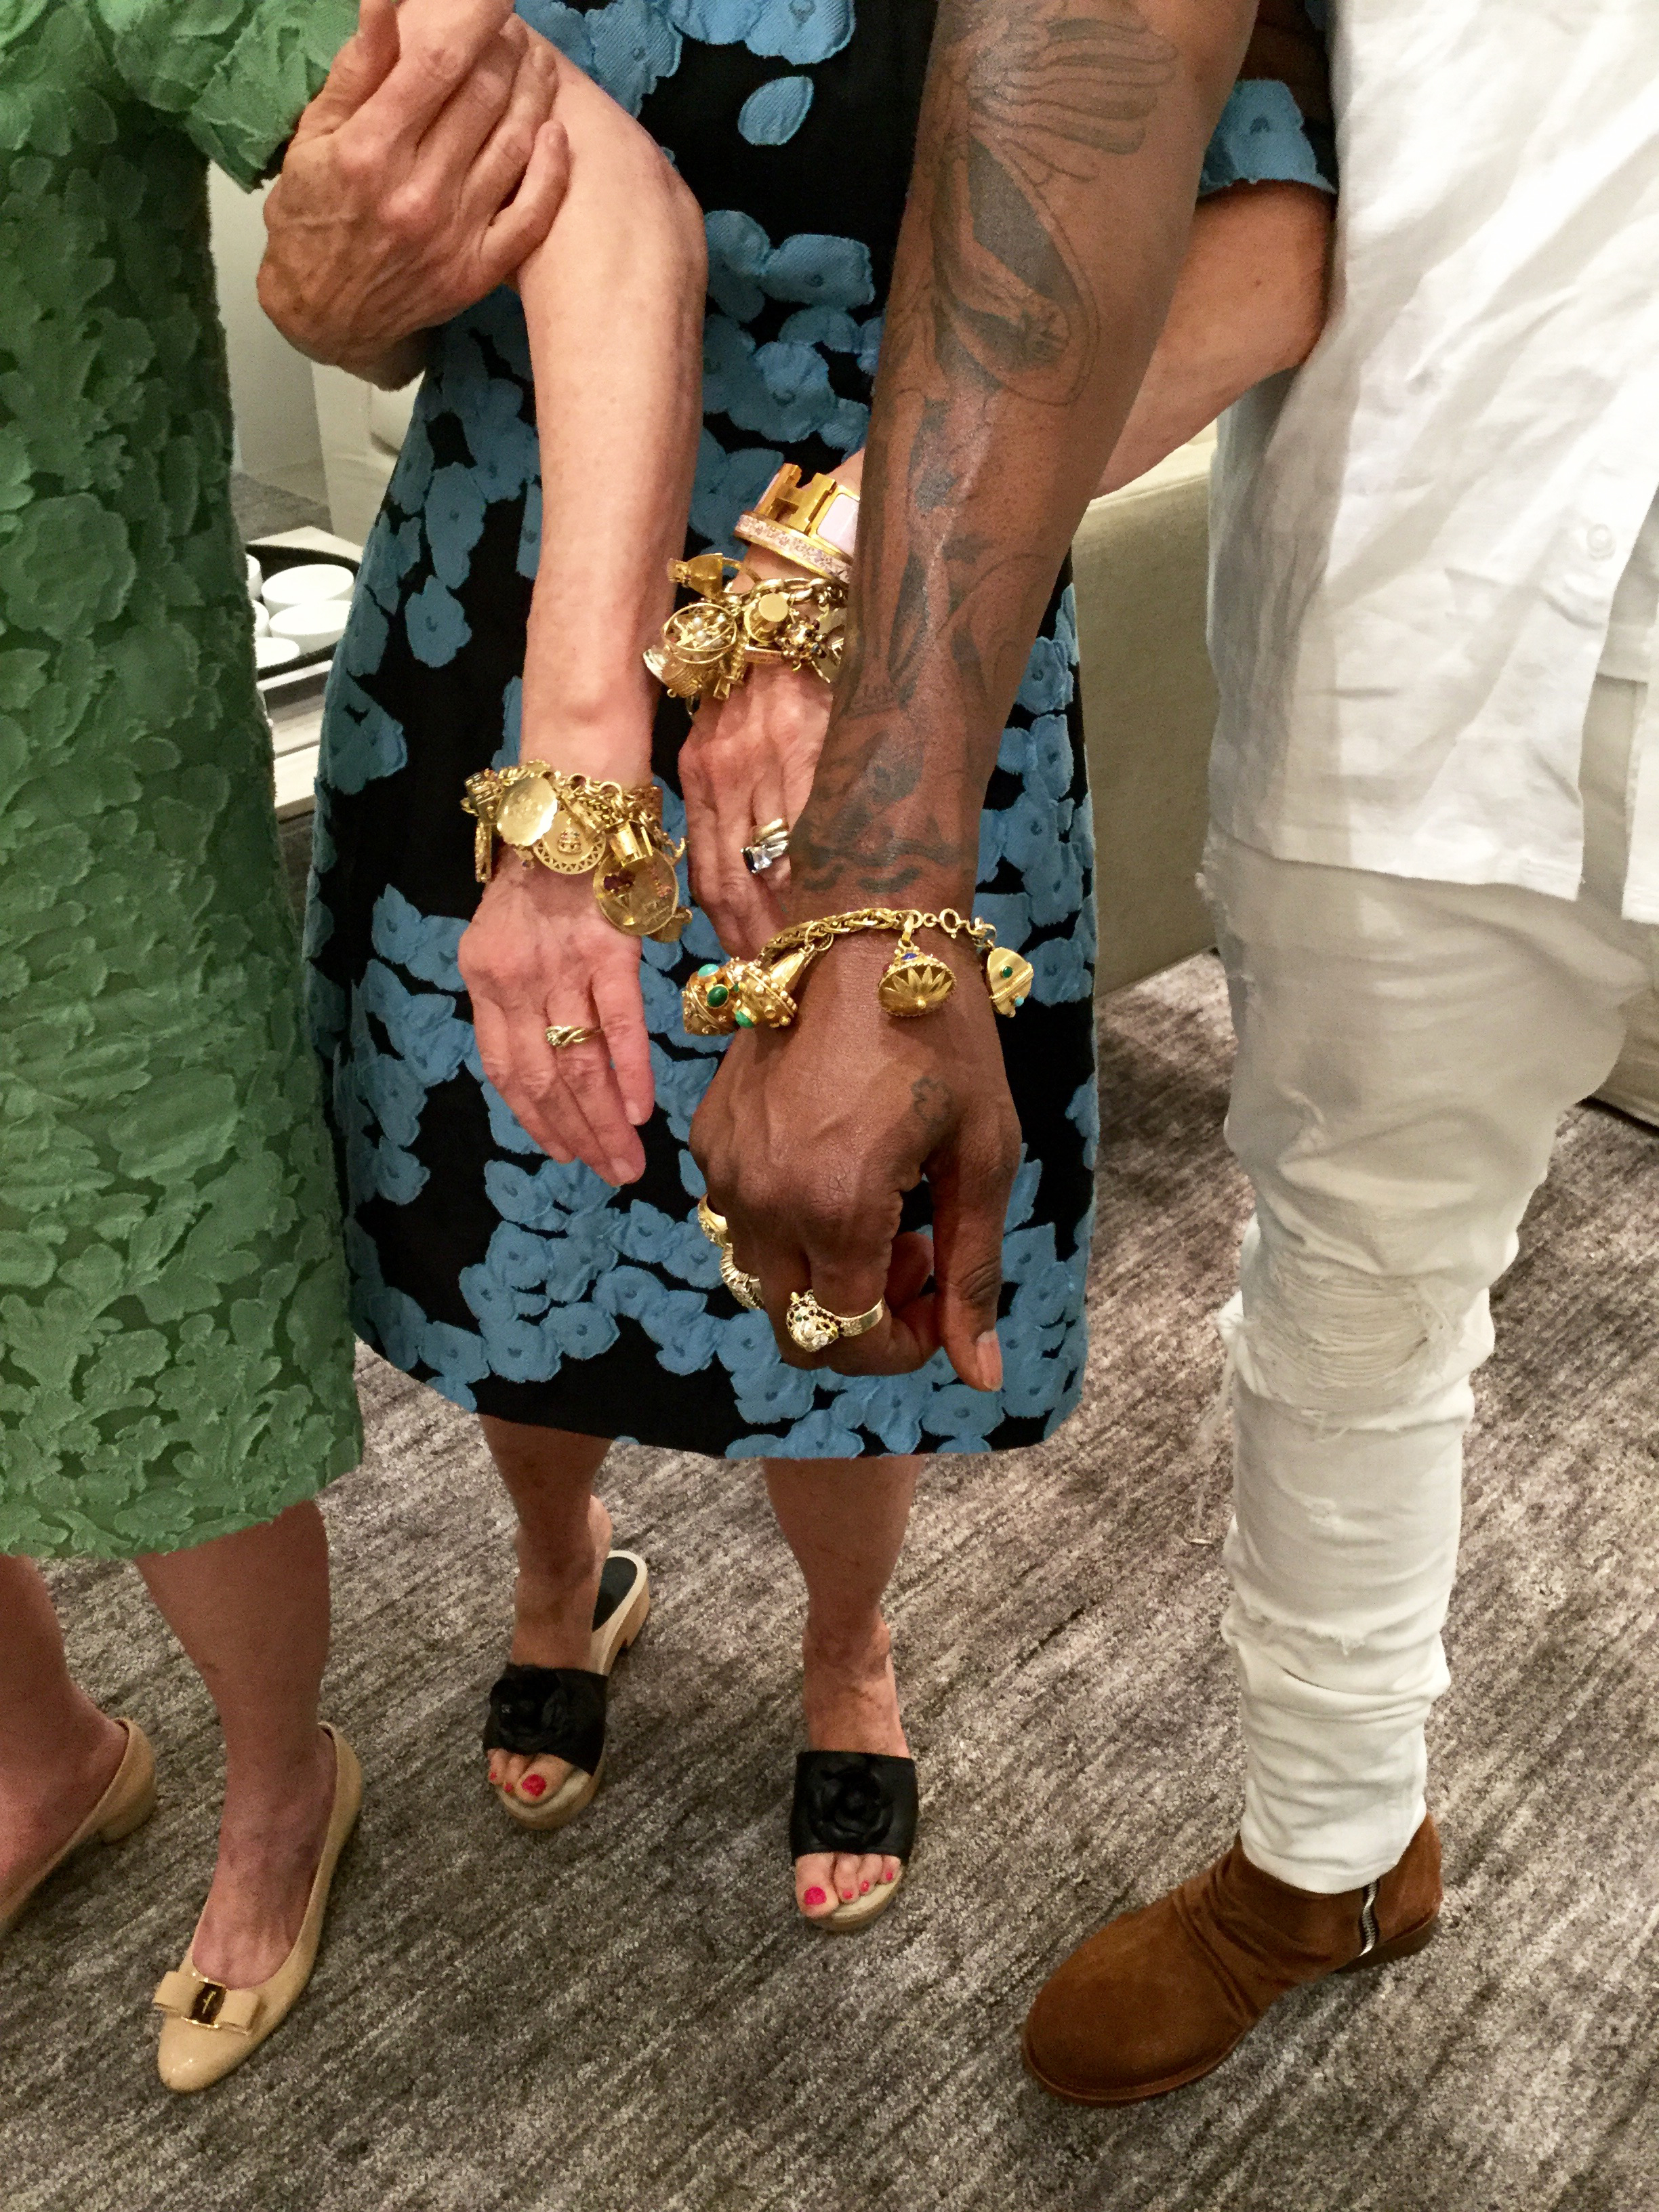 Susan, Babs, and 2 Chainz showing off their charm bracelets!